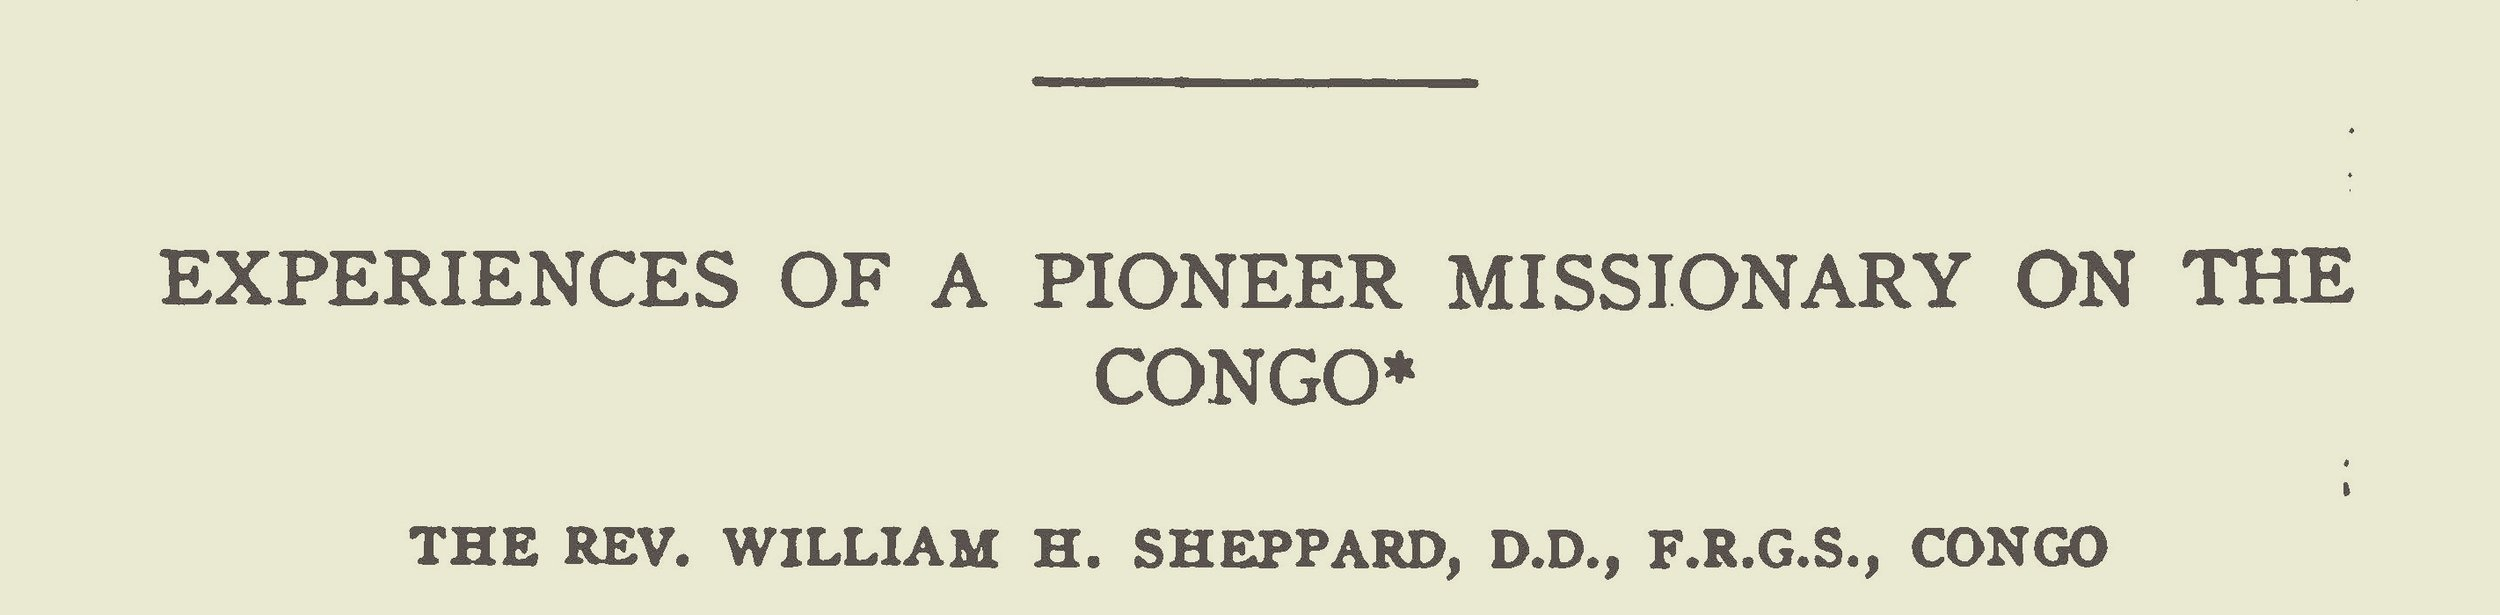 Sheppard, William Henry, Experiences of a Pioneer Missionary on the Congo Title Page.jpg